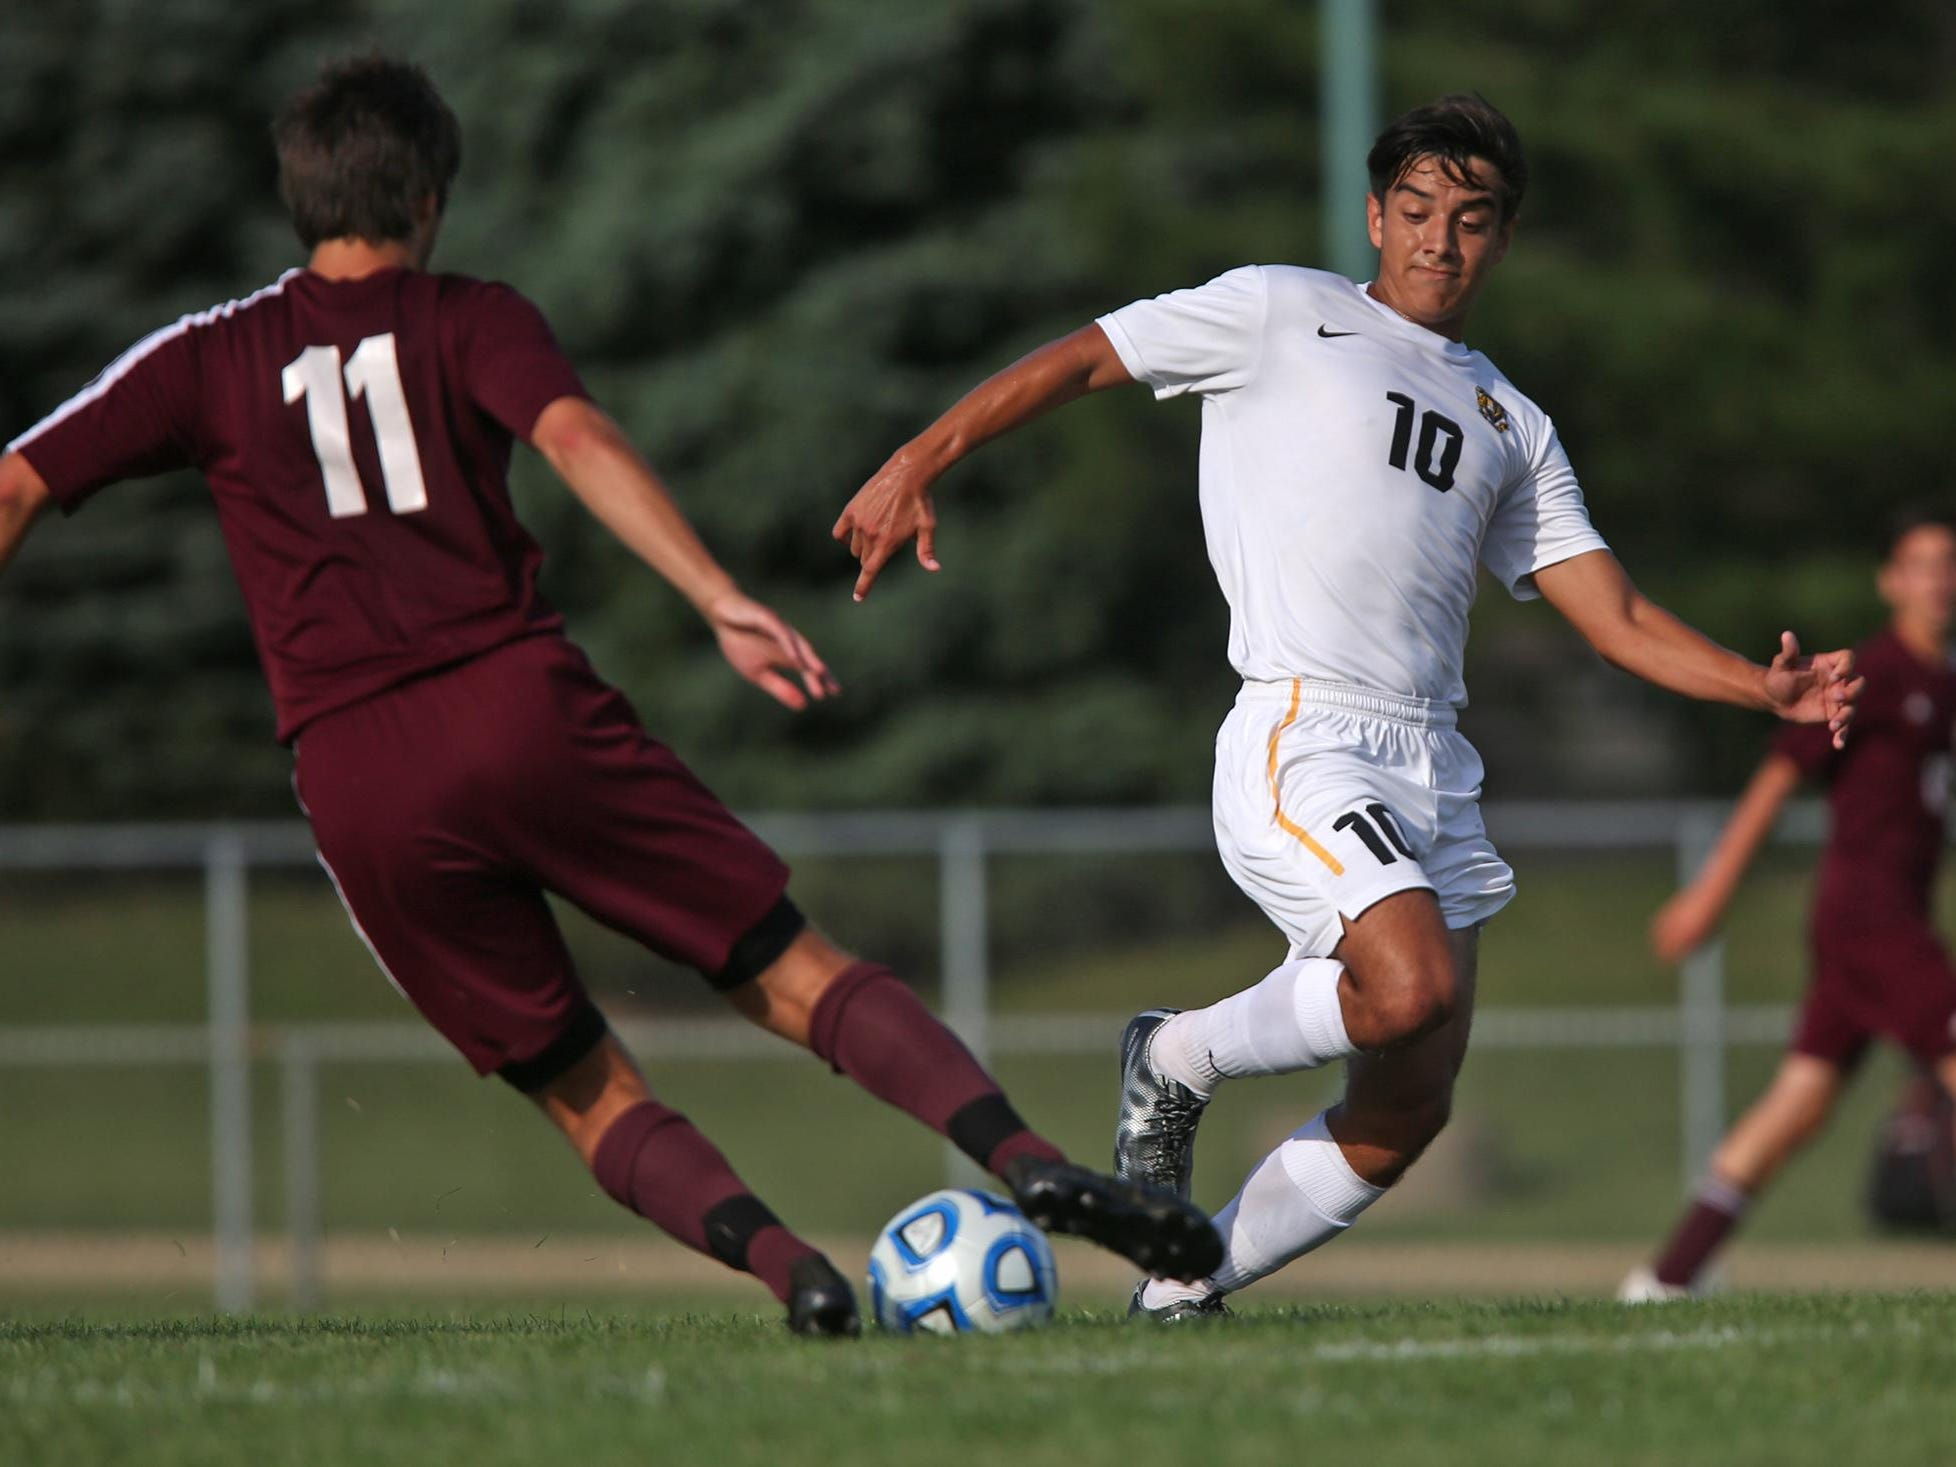 Chesterton's #11 Nate Dawson tries to keep the ball from Avon's #10 Carlos Mendez during the Chesterton at Avon boys varsity soccer match, Saturday, August 22, 2015. Avon won the match 3-2.